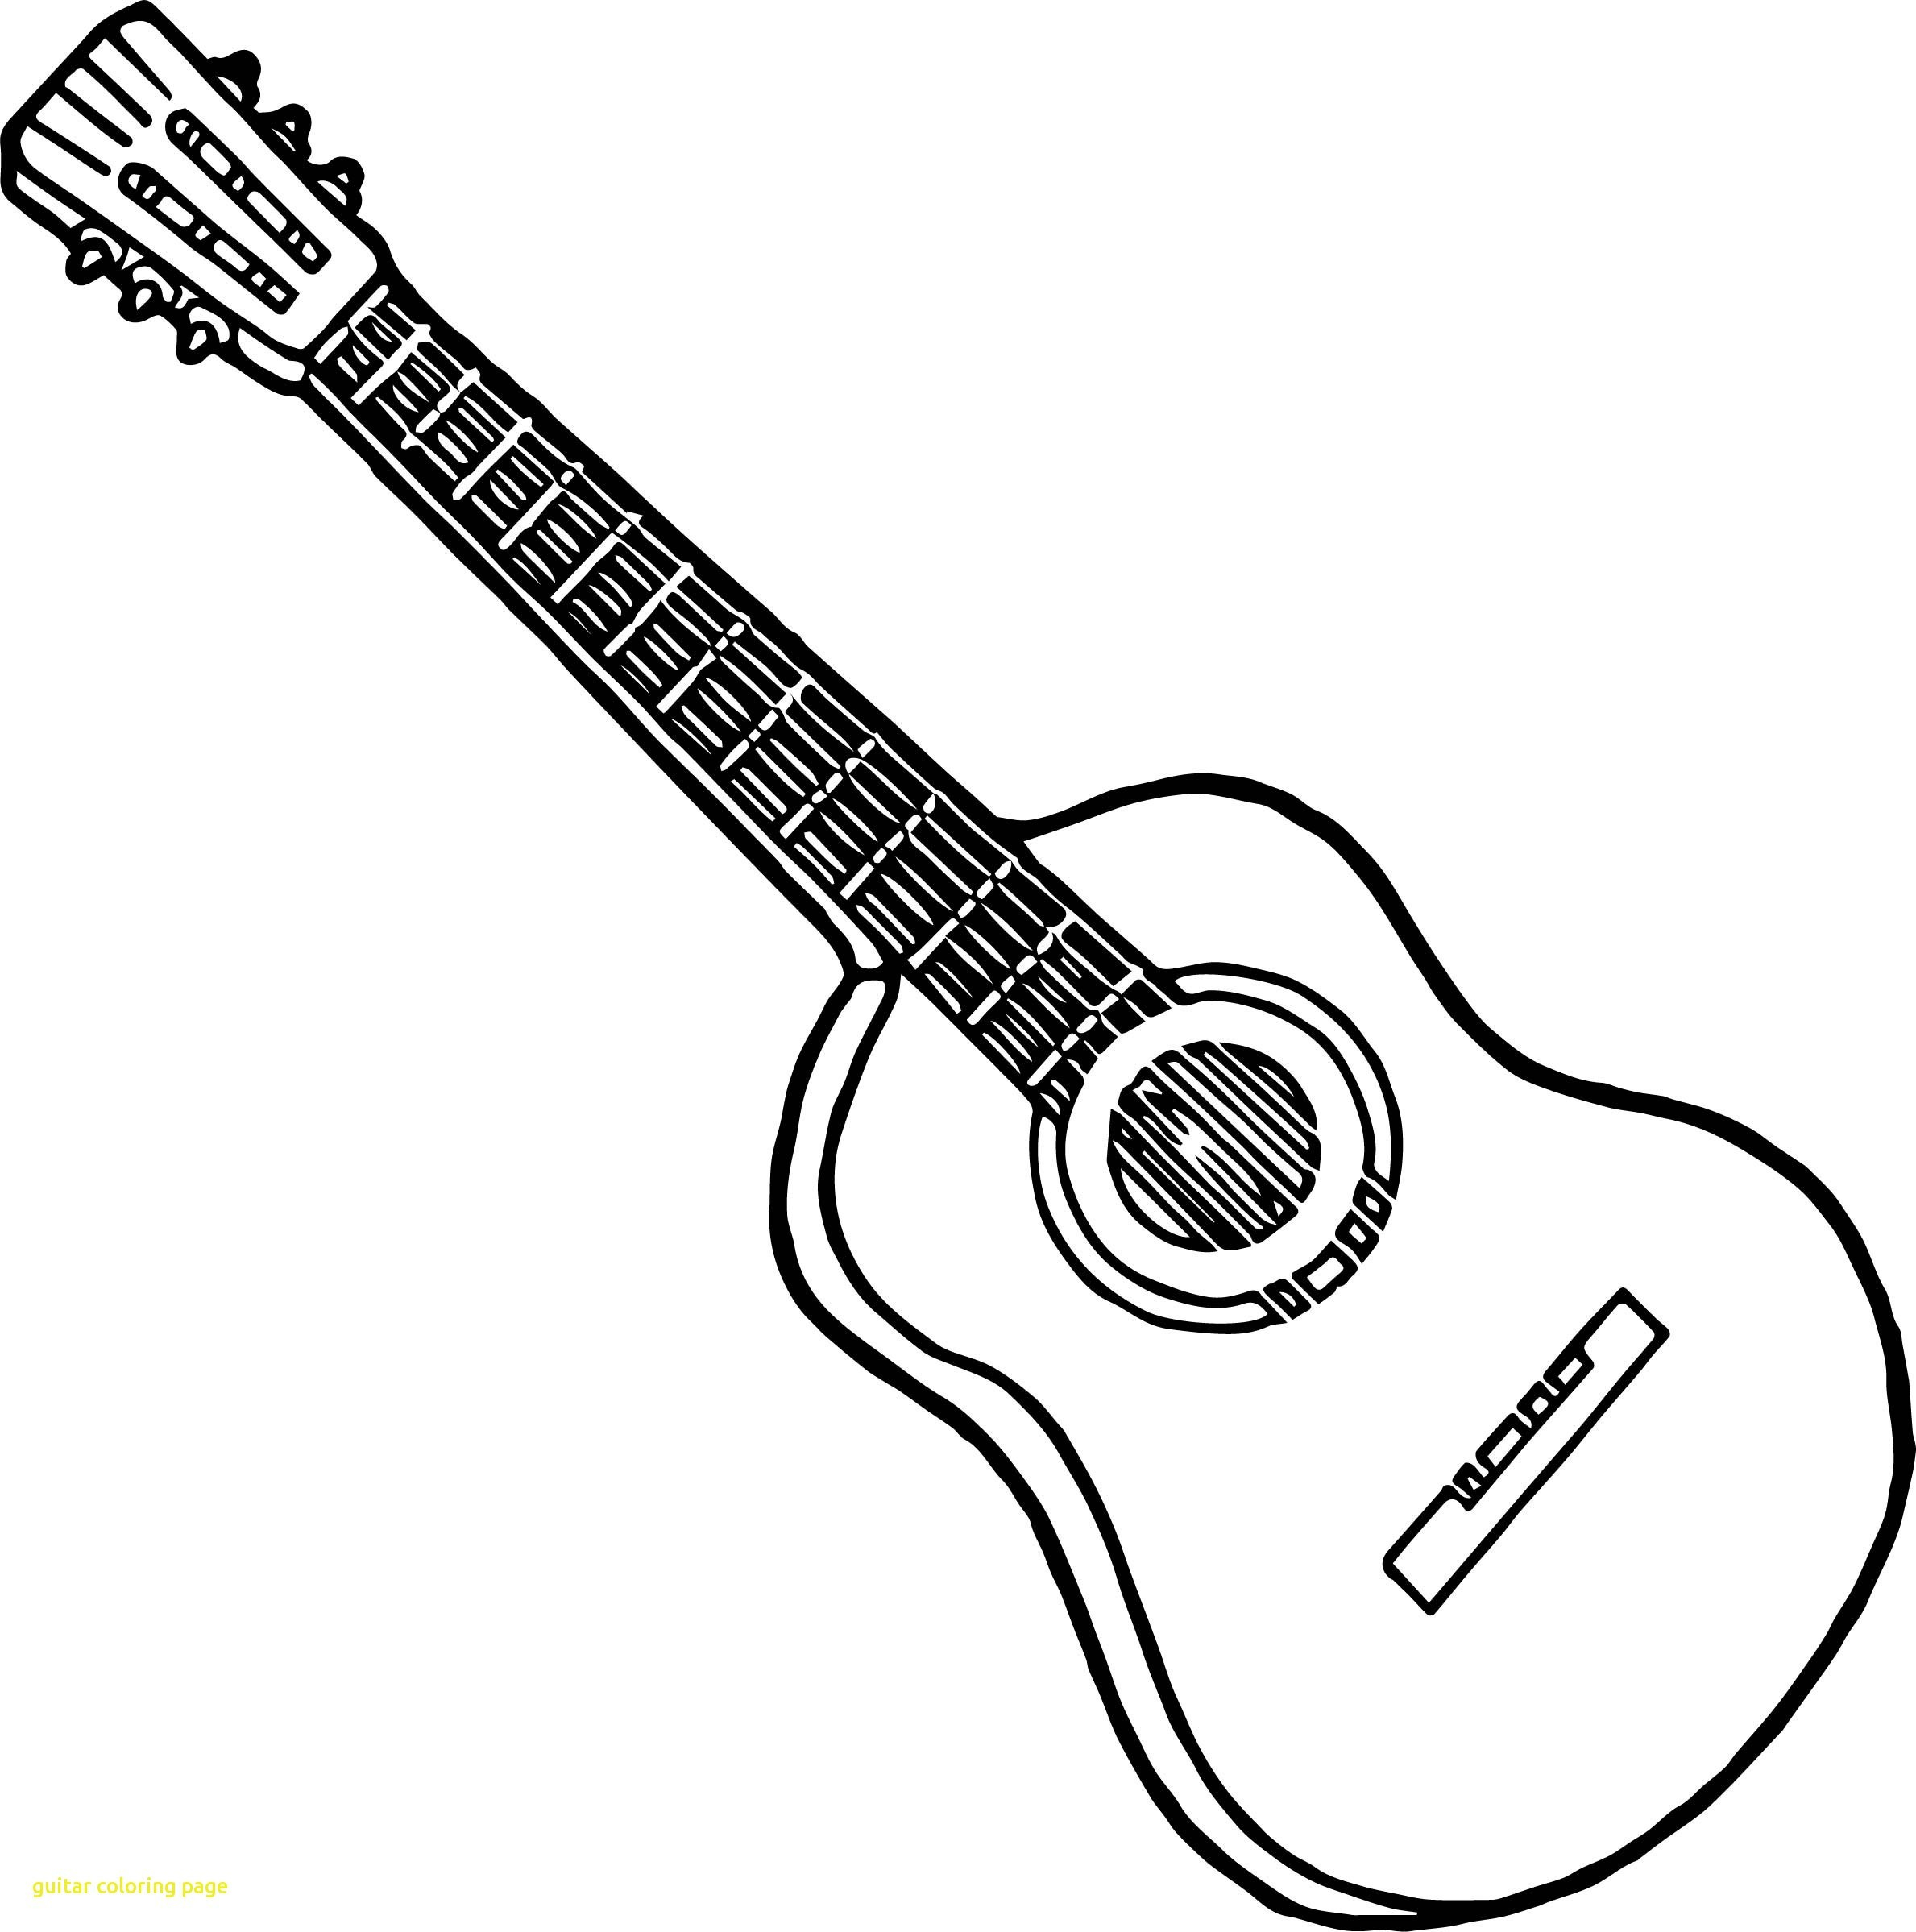 graphic about Guitar Printable titled Guitar Coloring Website page Hottest Guitar Coloring Web site With 6382